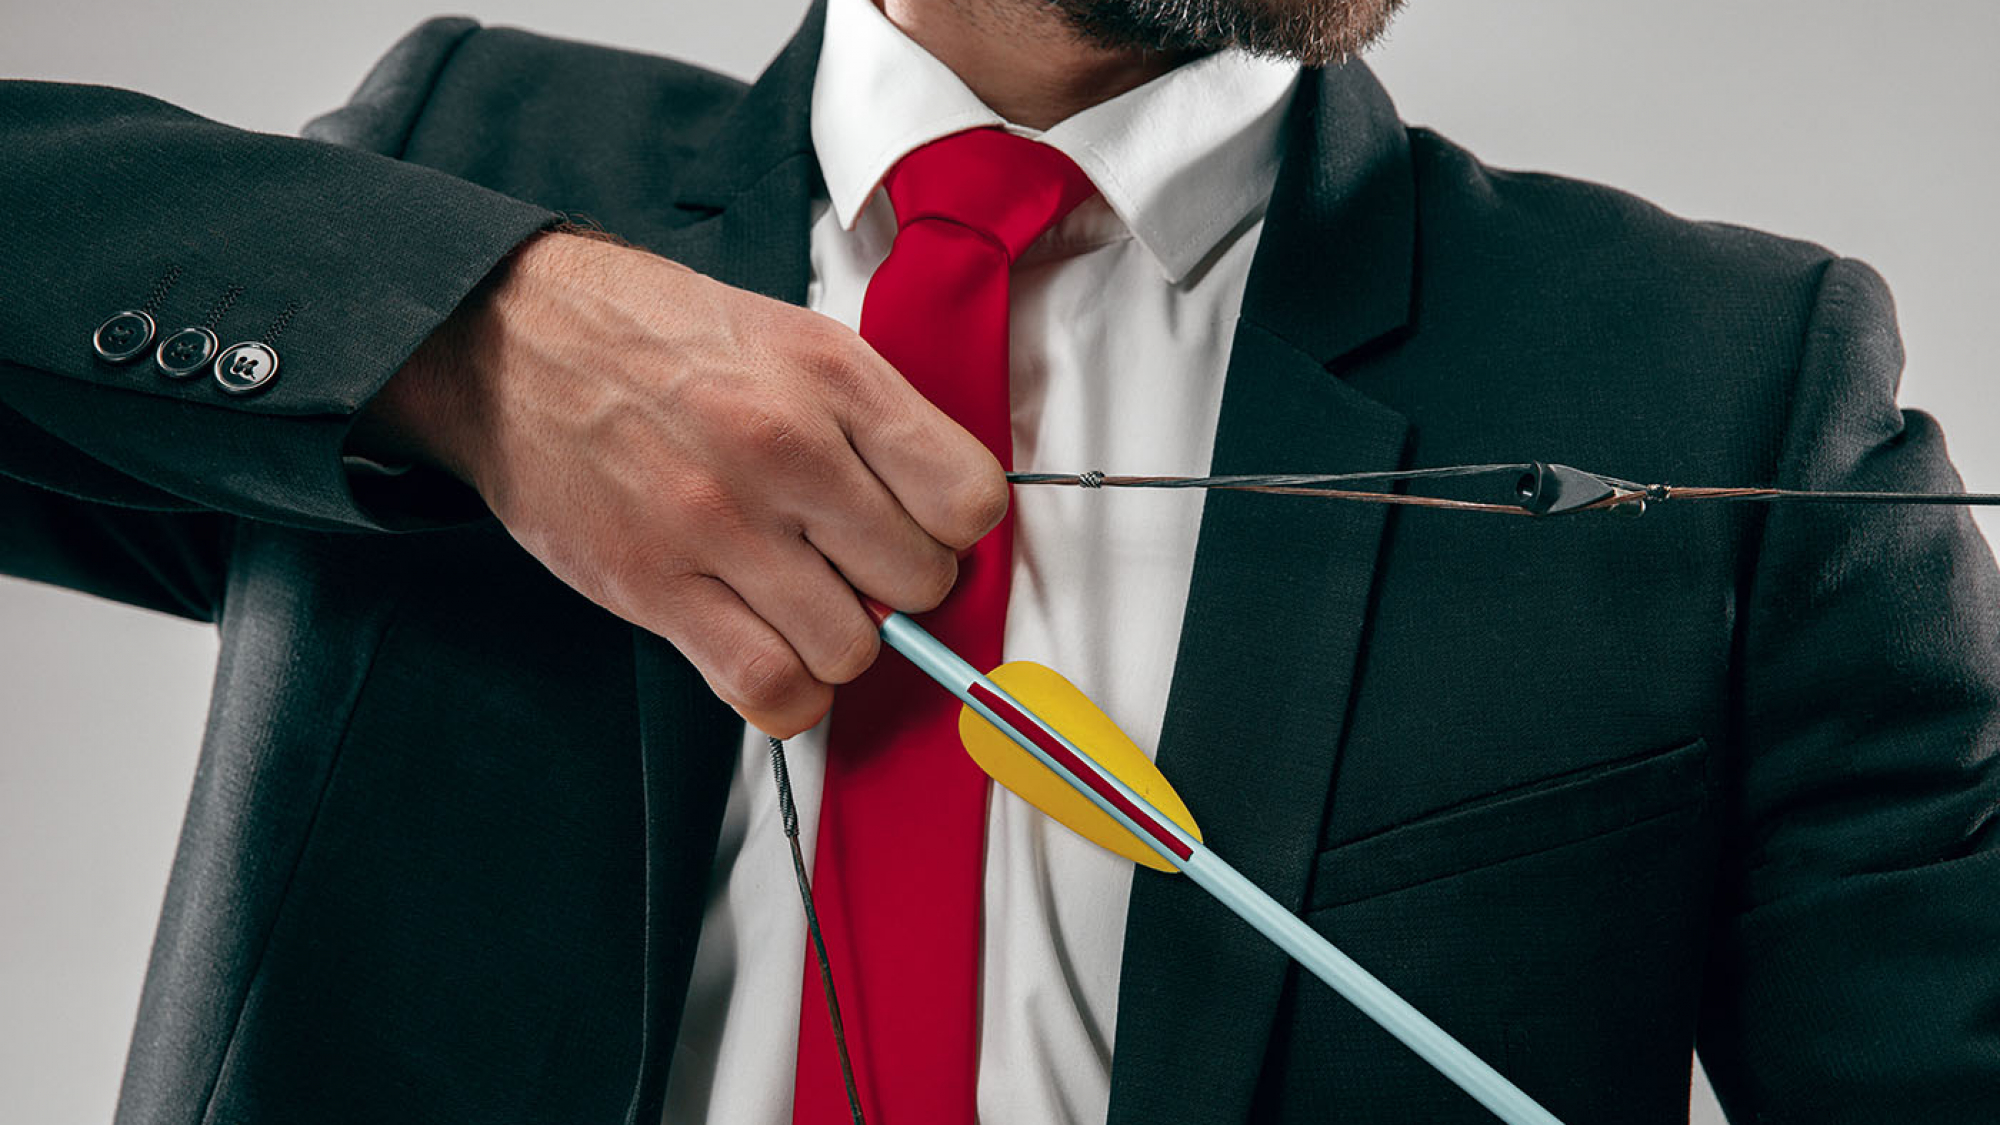 Businessman aiming at target with bow and arrow isolated on gray studio background. The business, goal, challenge, competition, achievement, purpose, victory, win, clarity, winner and success concept